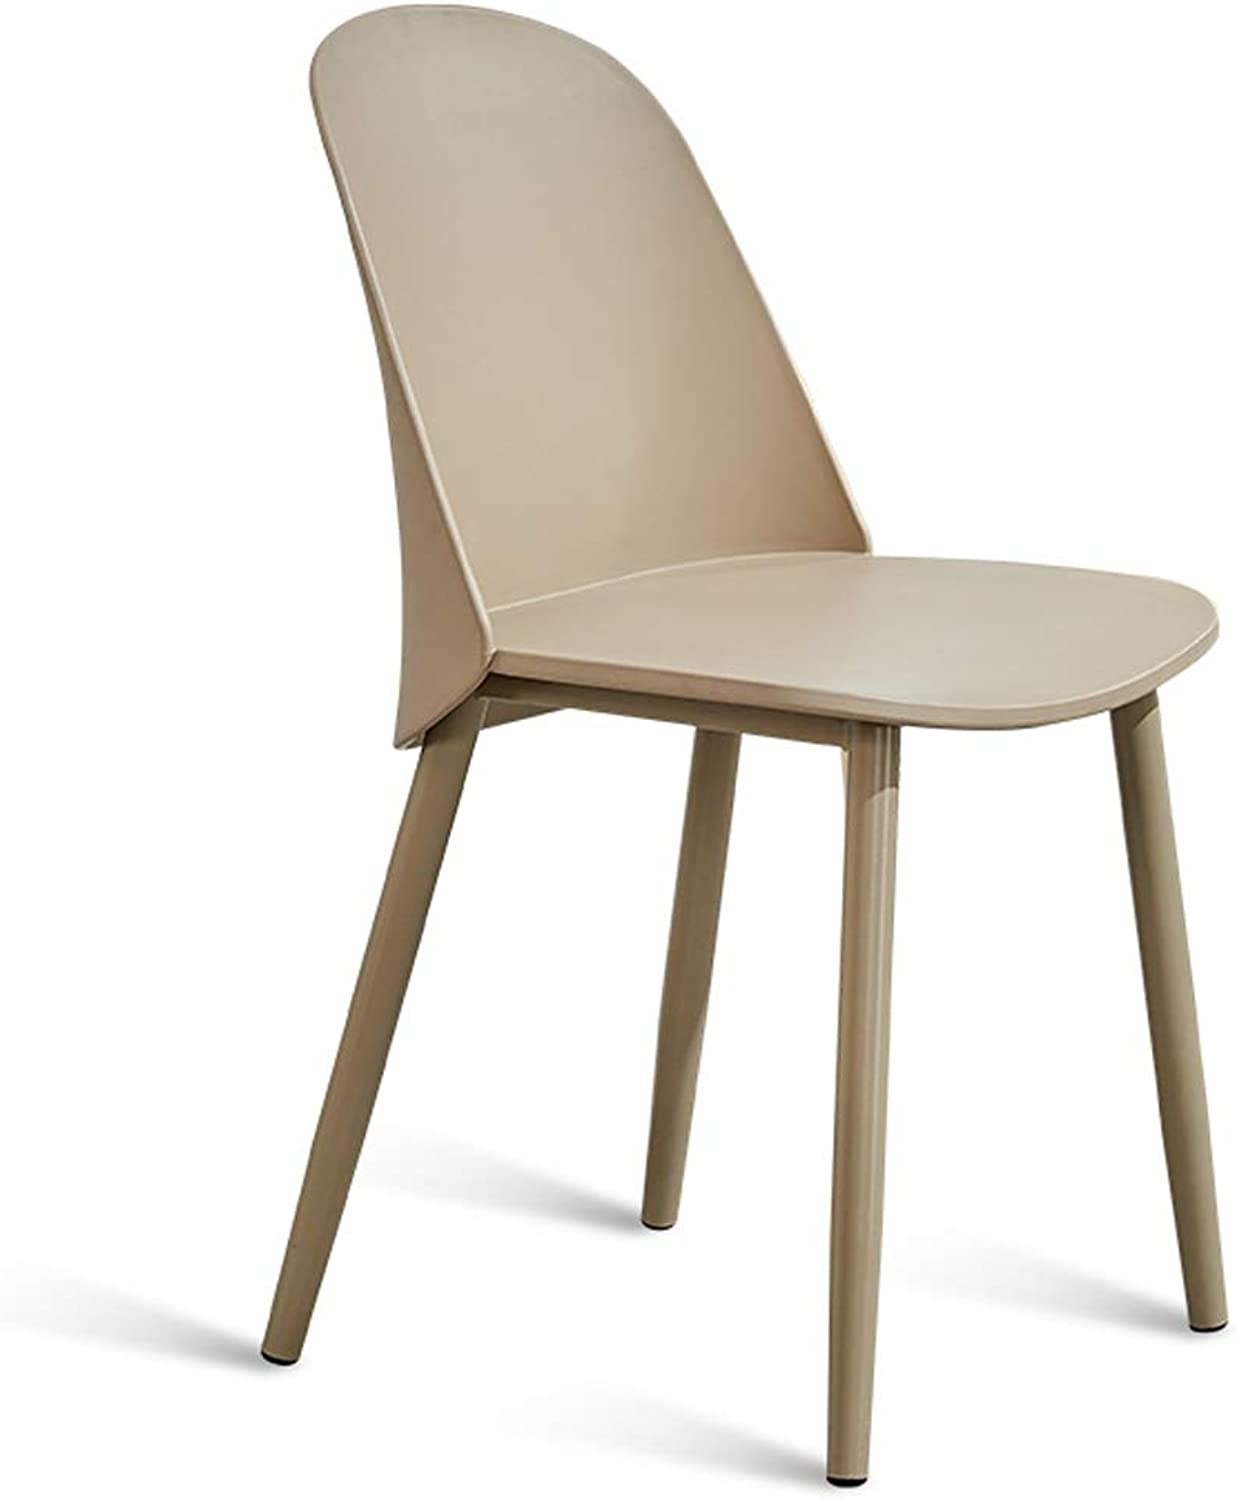 LRW Nordic Simple Desk and Chair Household Leisure Talk Reception Fashion Dining Chair Creative Backrest Study Chair Desk and Chair, Steel Leg, Kaki color